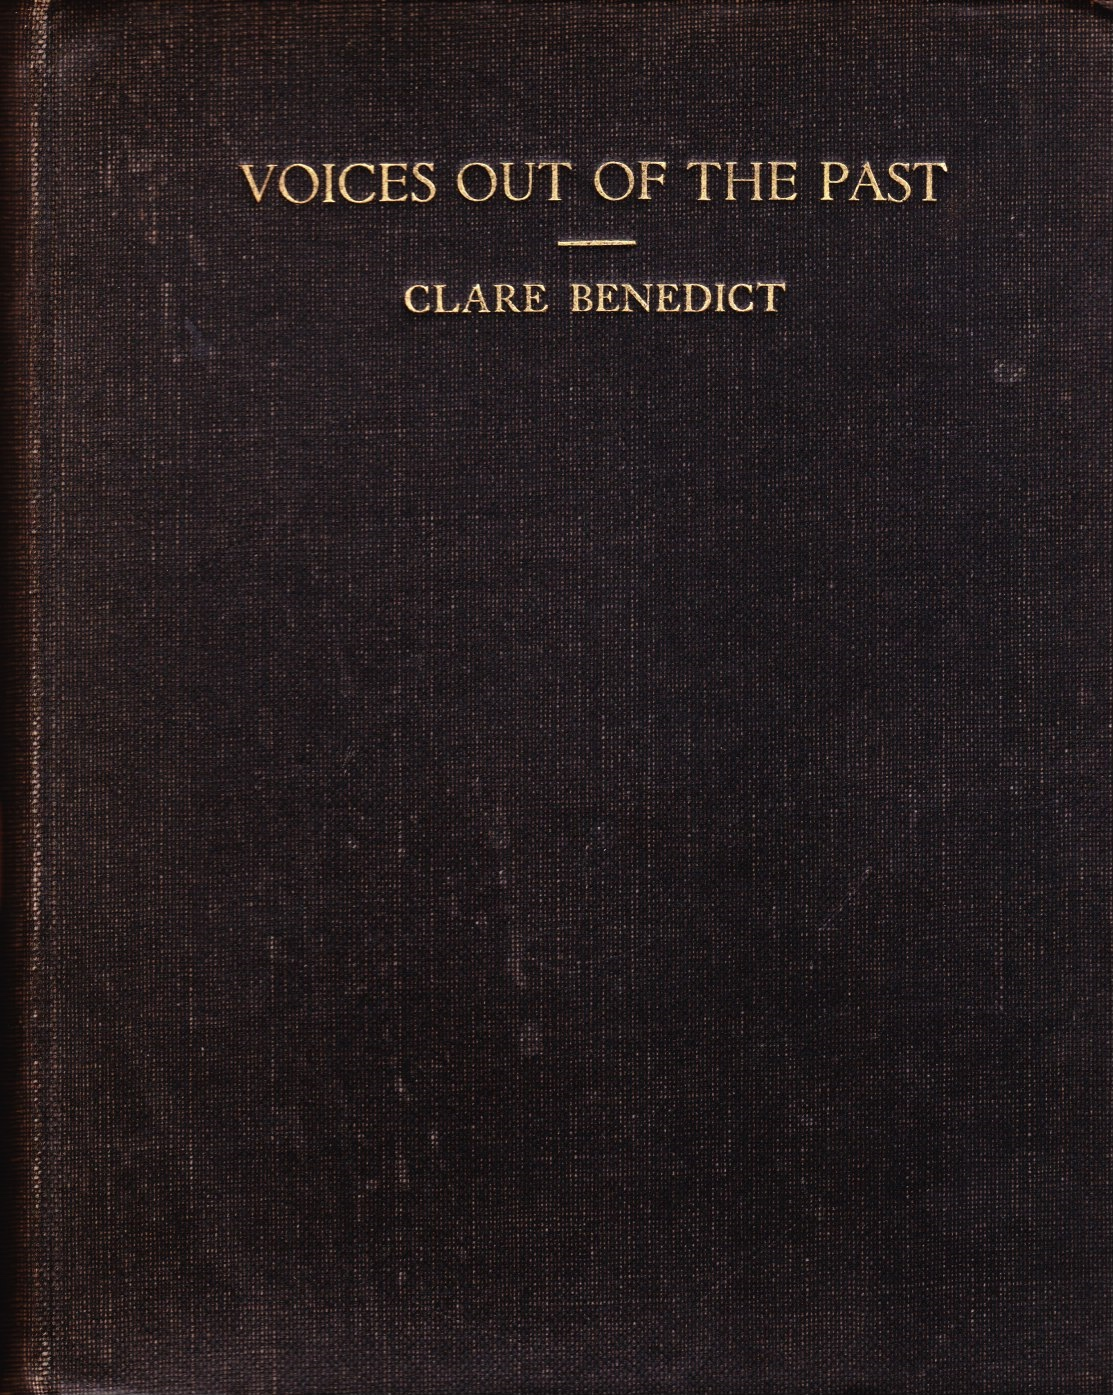 Image for Voices out of the Past Five Generations (1785 - 1923) Being Scattered Chapters from the History of the Cooper, Pomeroy, Woolson and Benedict Families....